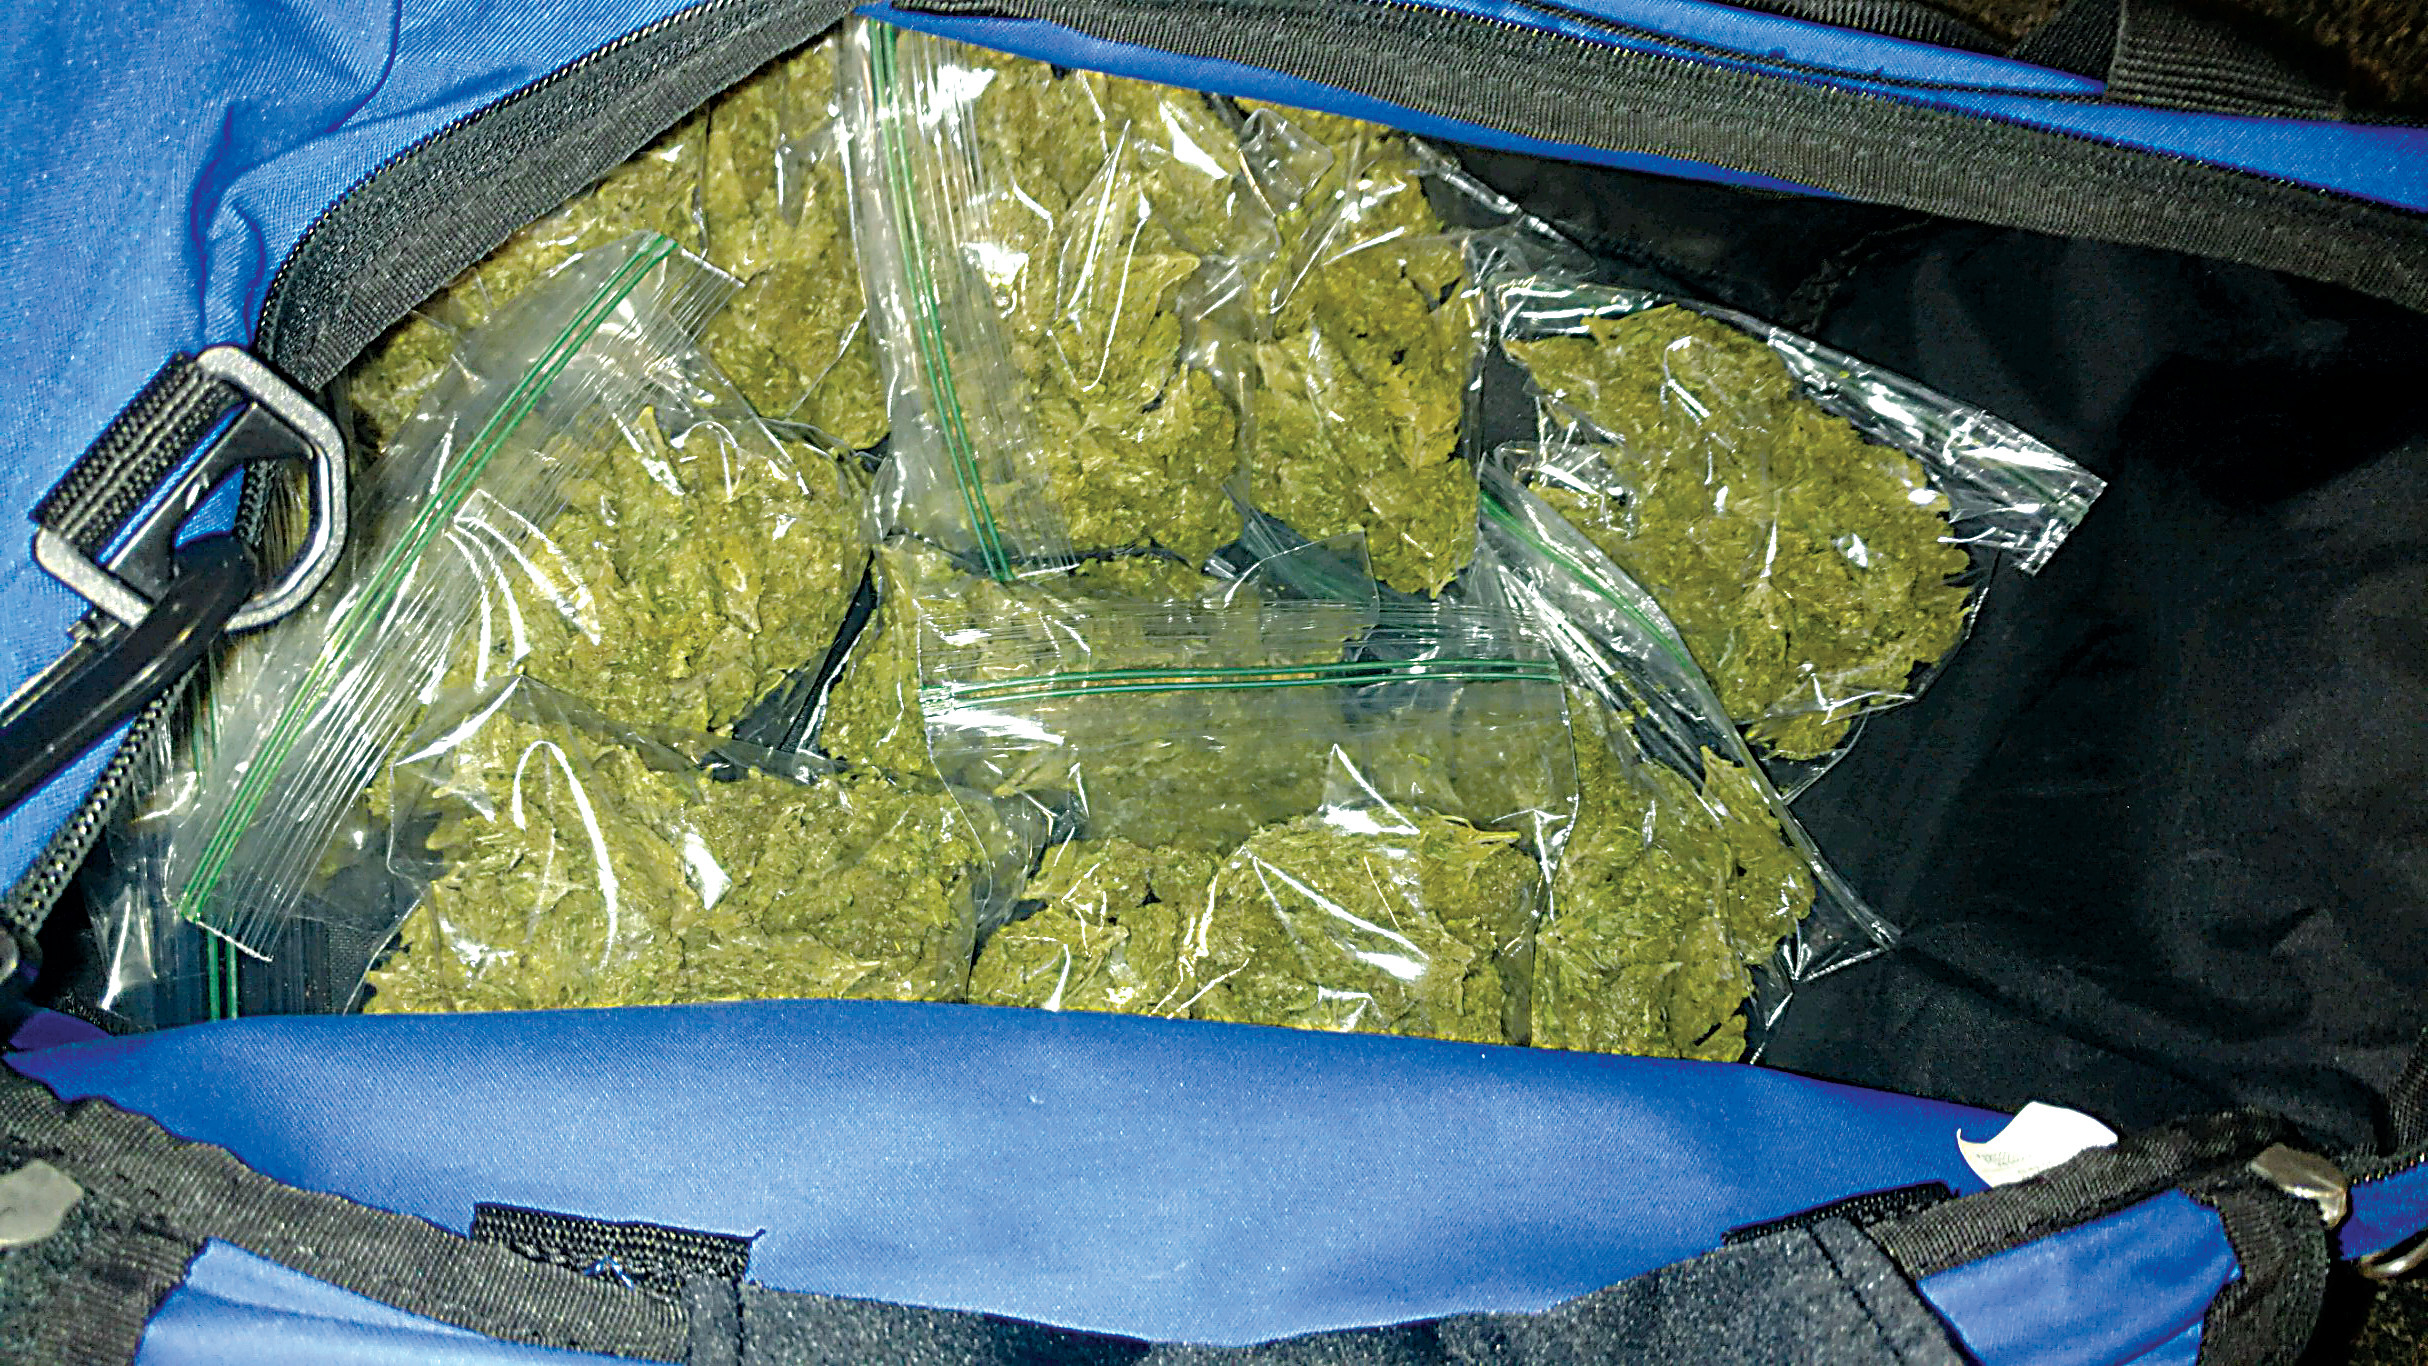 A duffle bag containing about a half pound of marijuana was recovered from a car parked at 7-11.